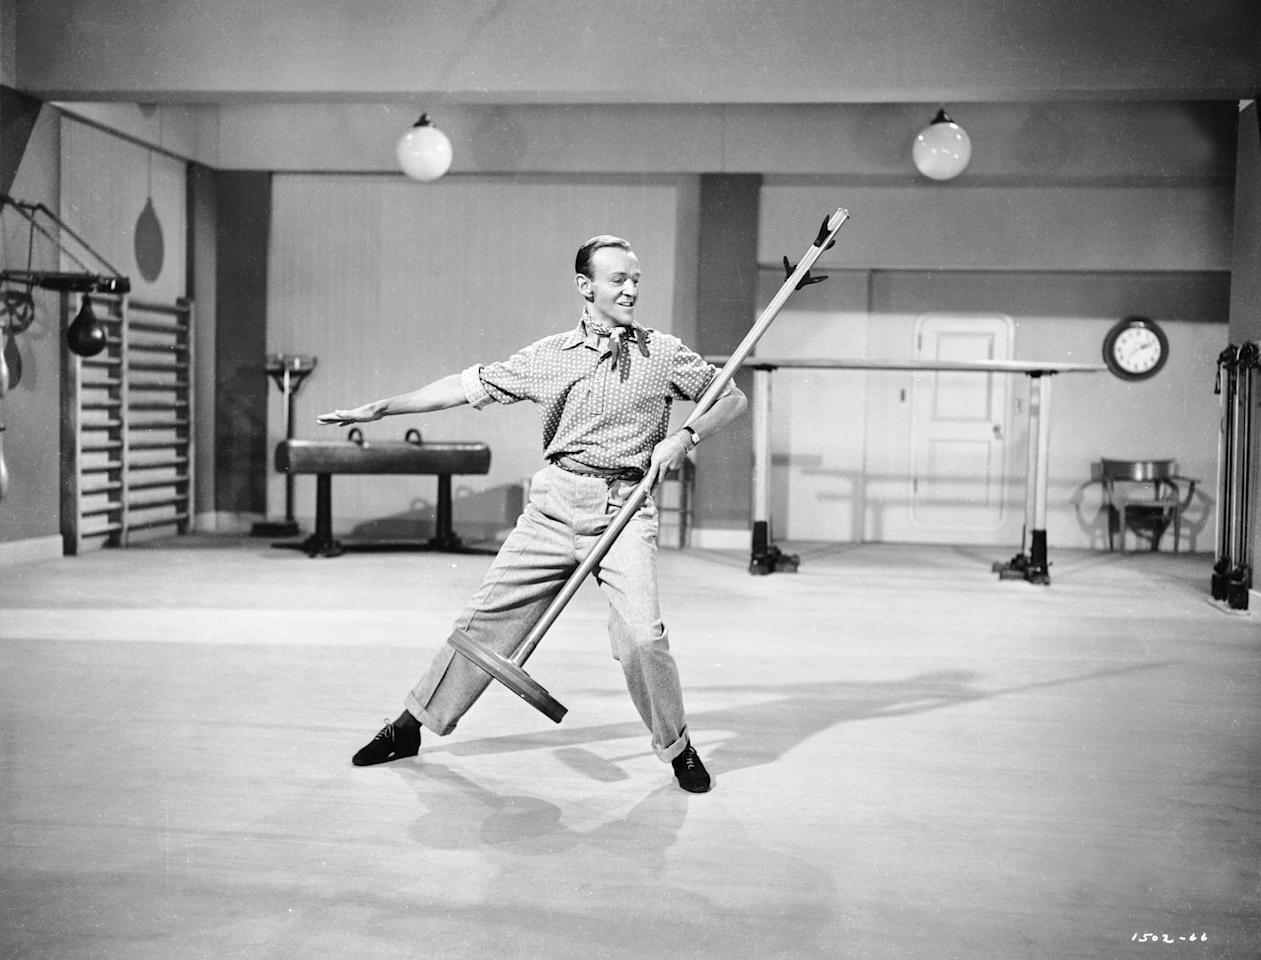 """This image released by Turner Classic Movies shows Fred Astaire in a scene from the 1951 film, """"Royal Wedding."""" Turner Classic holds a unique place on the dial and in the hearts of cinephiles. But for many filmmakers, TCM isn't just a favorite channel, it's a lifeblood. Among directors from Martin Scorsese to Paul Thomas Anderson it's a common refrain that Turner Classic is a constant source of inspiration and a beloved background in their lives (Turner Classic Movies via AP)"""